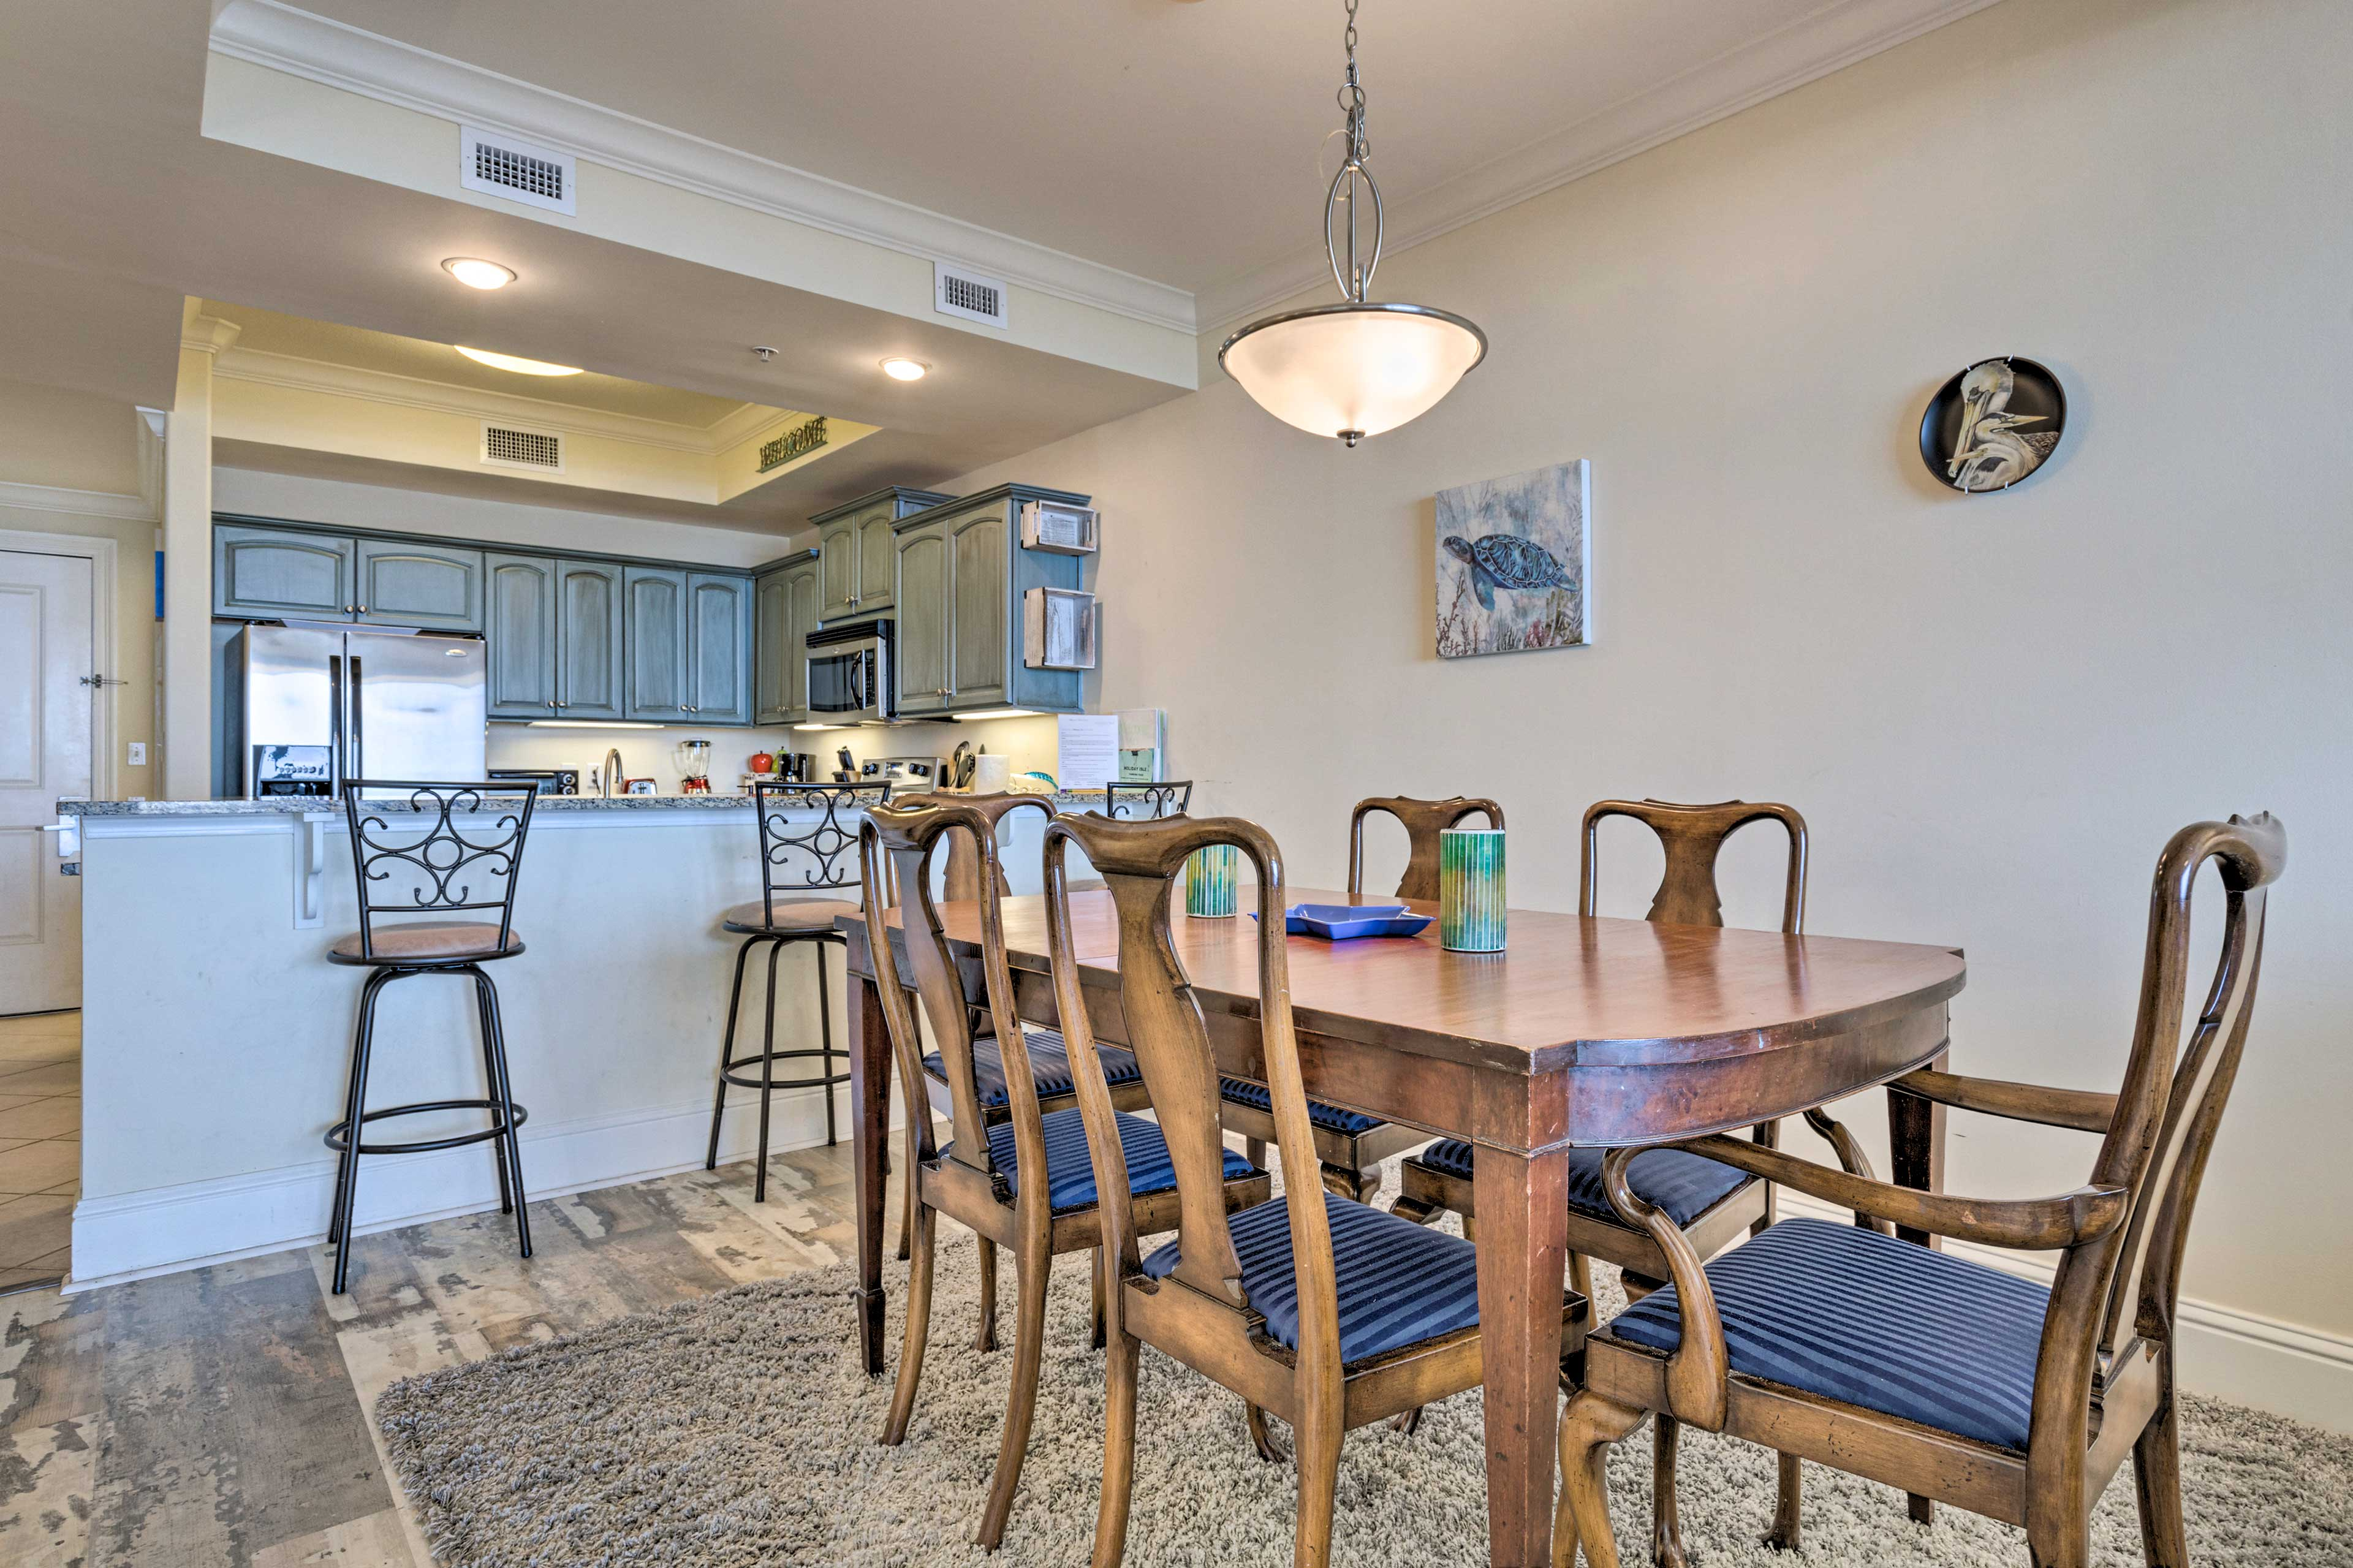 Eat the dining table or enjoy a meal at the breakfast bar.